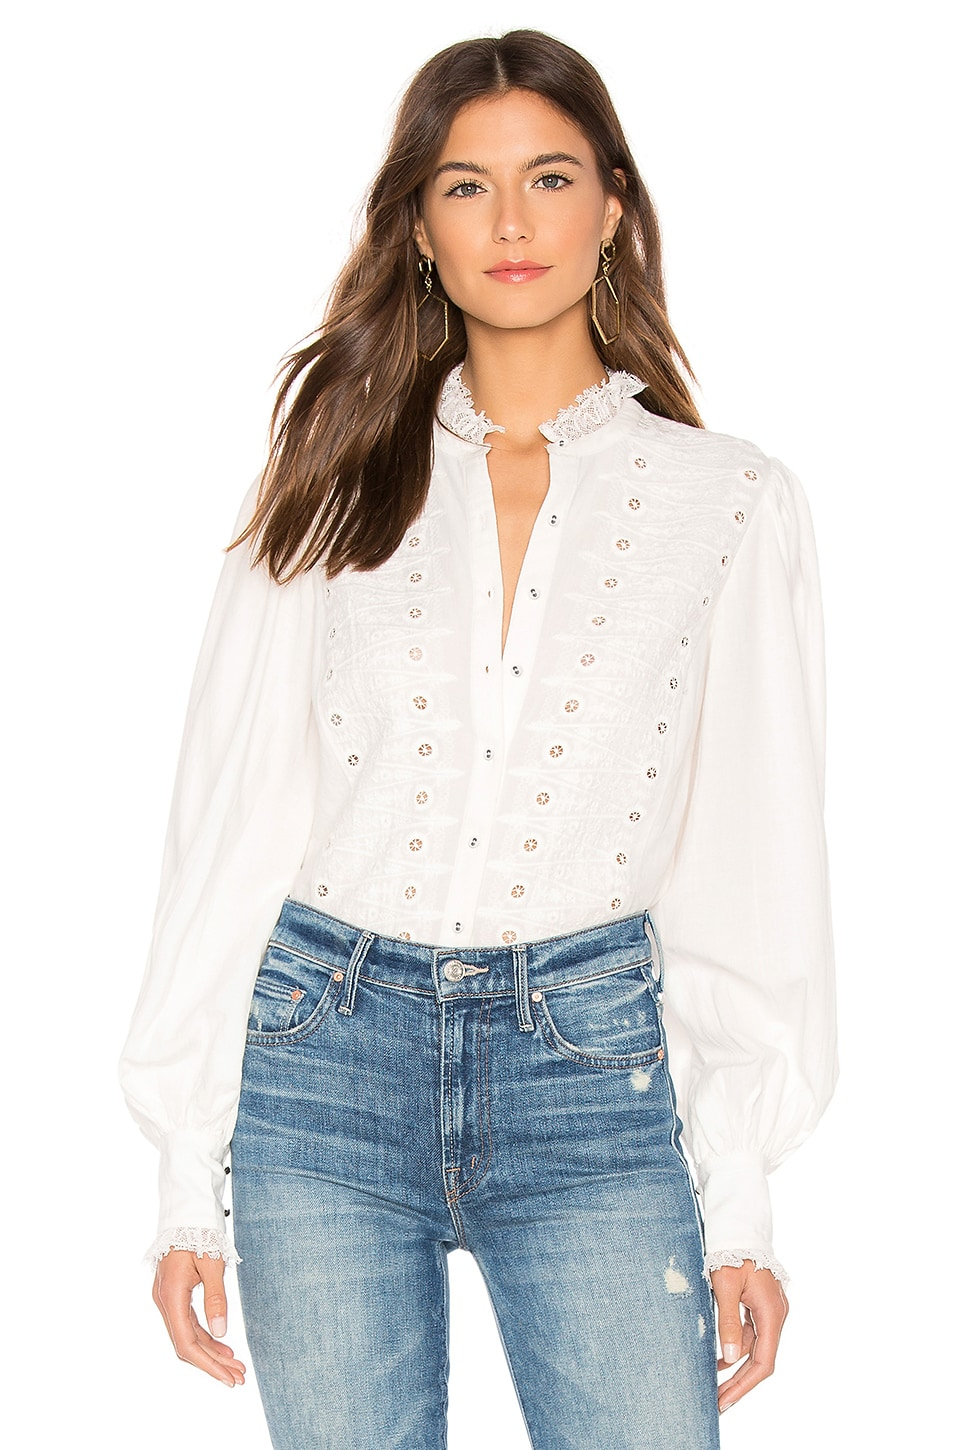 Joie Bobette Blouse in Porcelain